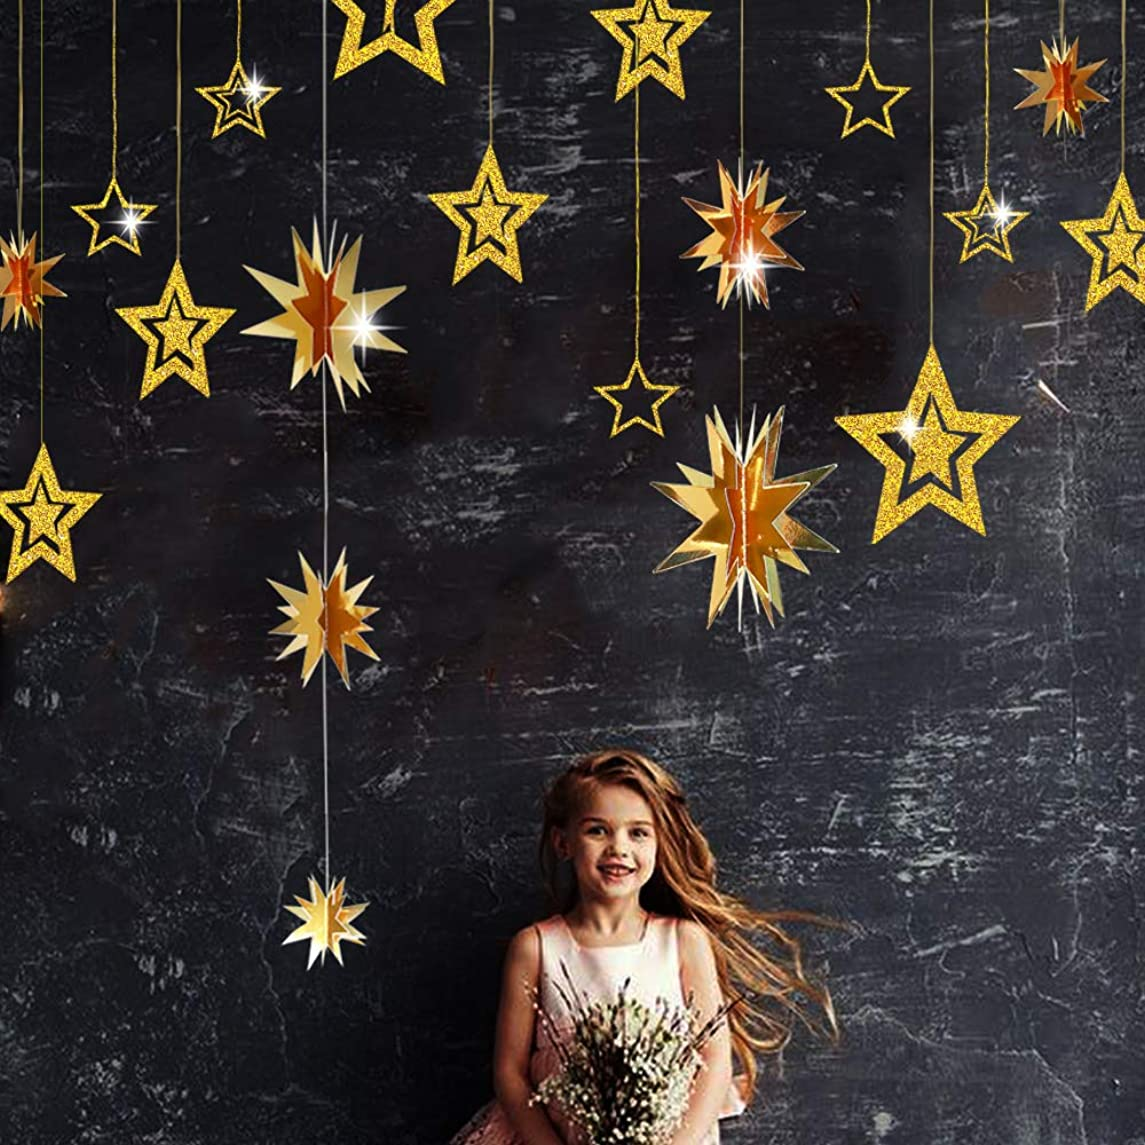 Gold Twinkle Star Party Decoration Kit Metallic Glitter 3D Hanging Star Bunting Garland Twinkle Star Cutouts Decor for Nursery Kids Boys Girls room Birthday Wedding Baby Shower Christmas Party Supply